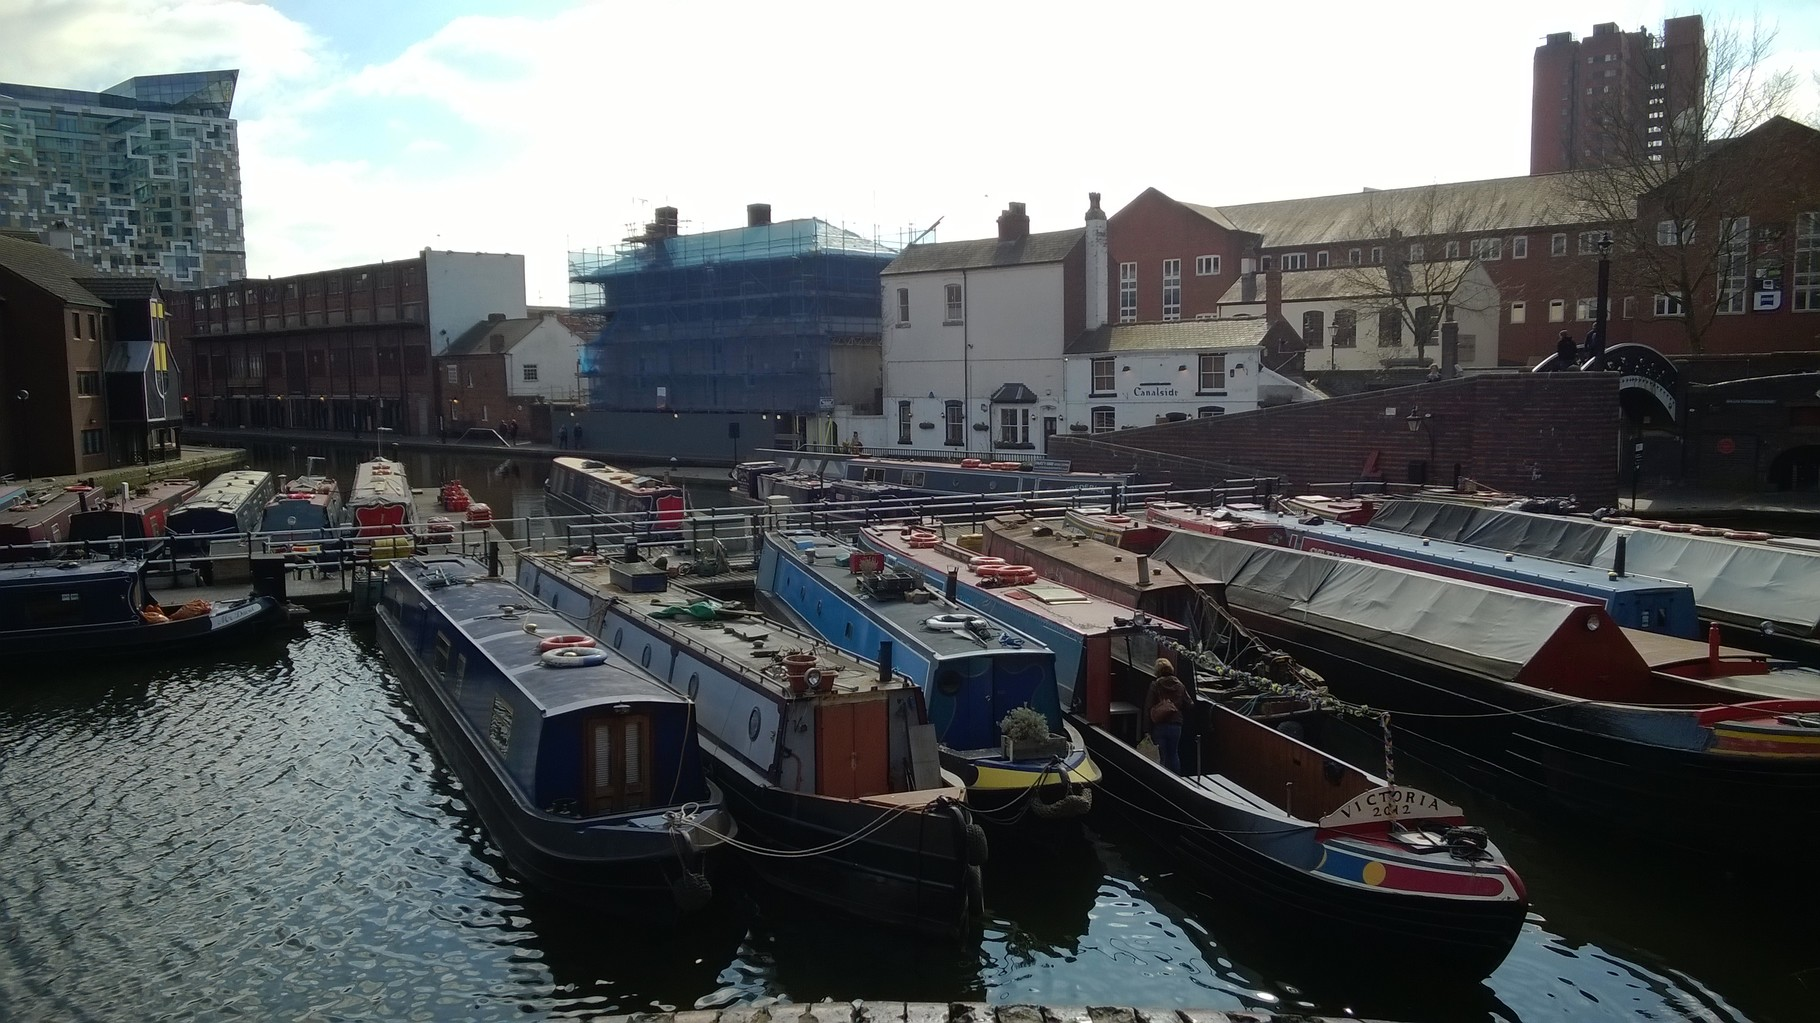 Boats tied for the winter in Gas Street Basin